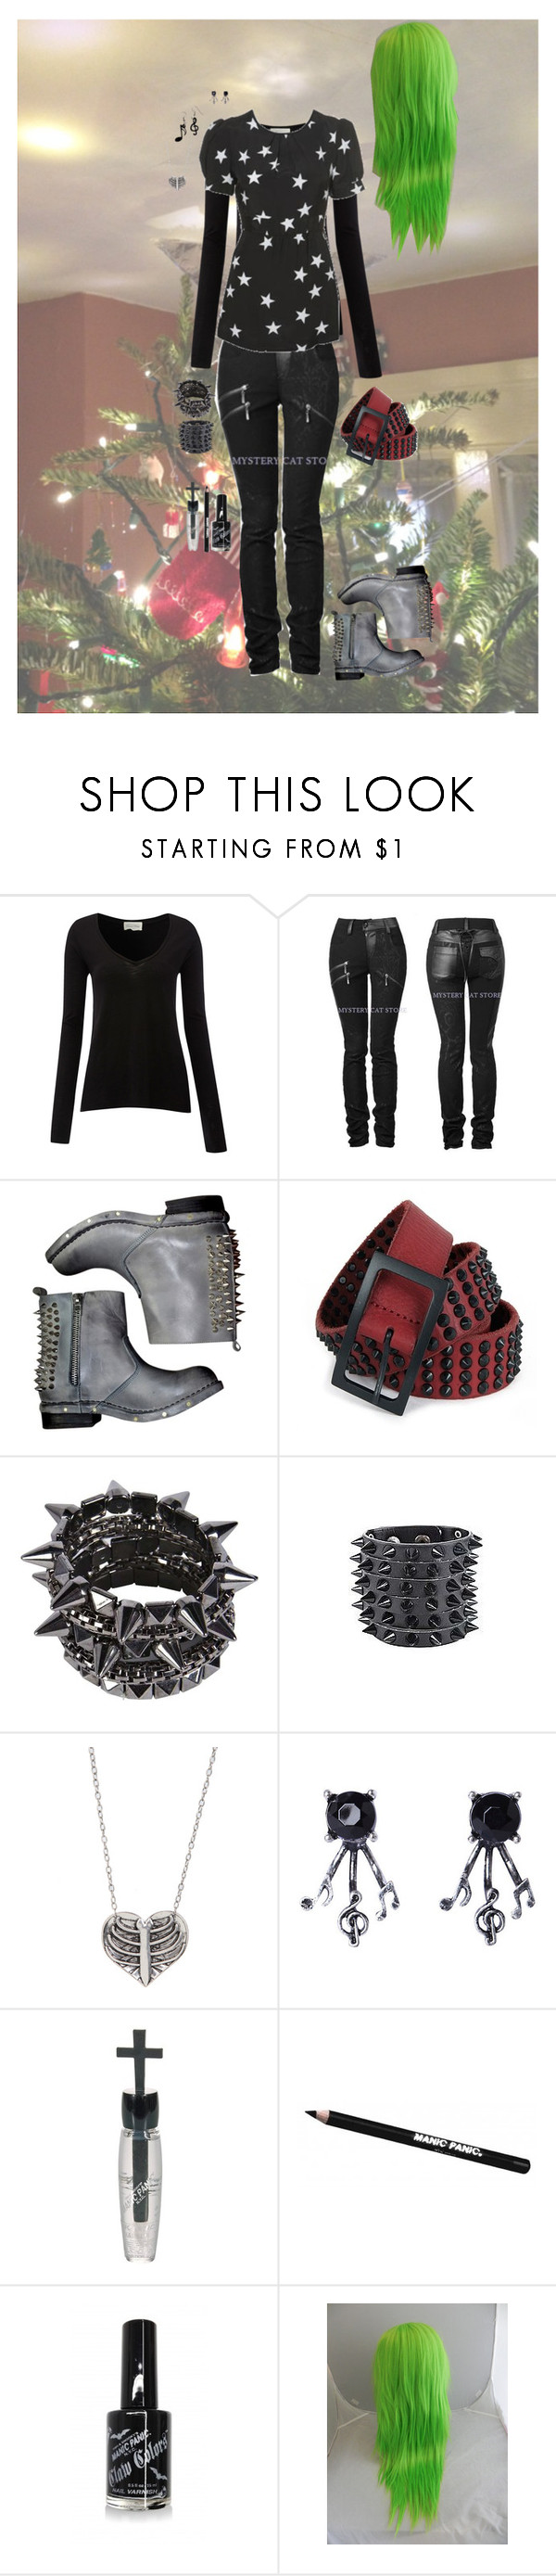 """""""3: Holiday Party"""" by candy-coated-doom ❤ liked on Polyvore featuring American Vintage, Topshop, Jeffrey Campbell, Zadig & Voltaire, Manic Panic NYC, holidays and 1thru4"""